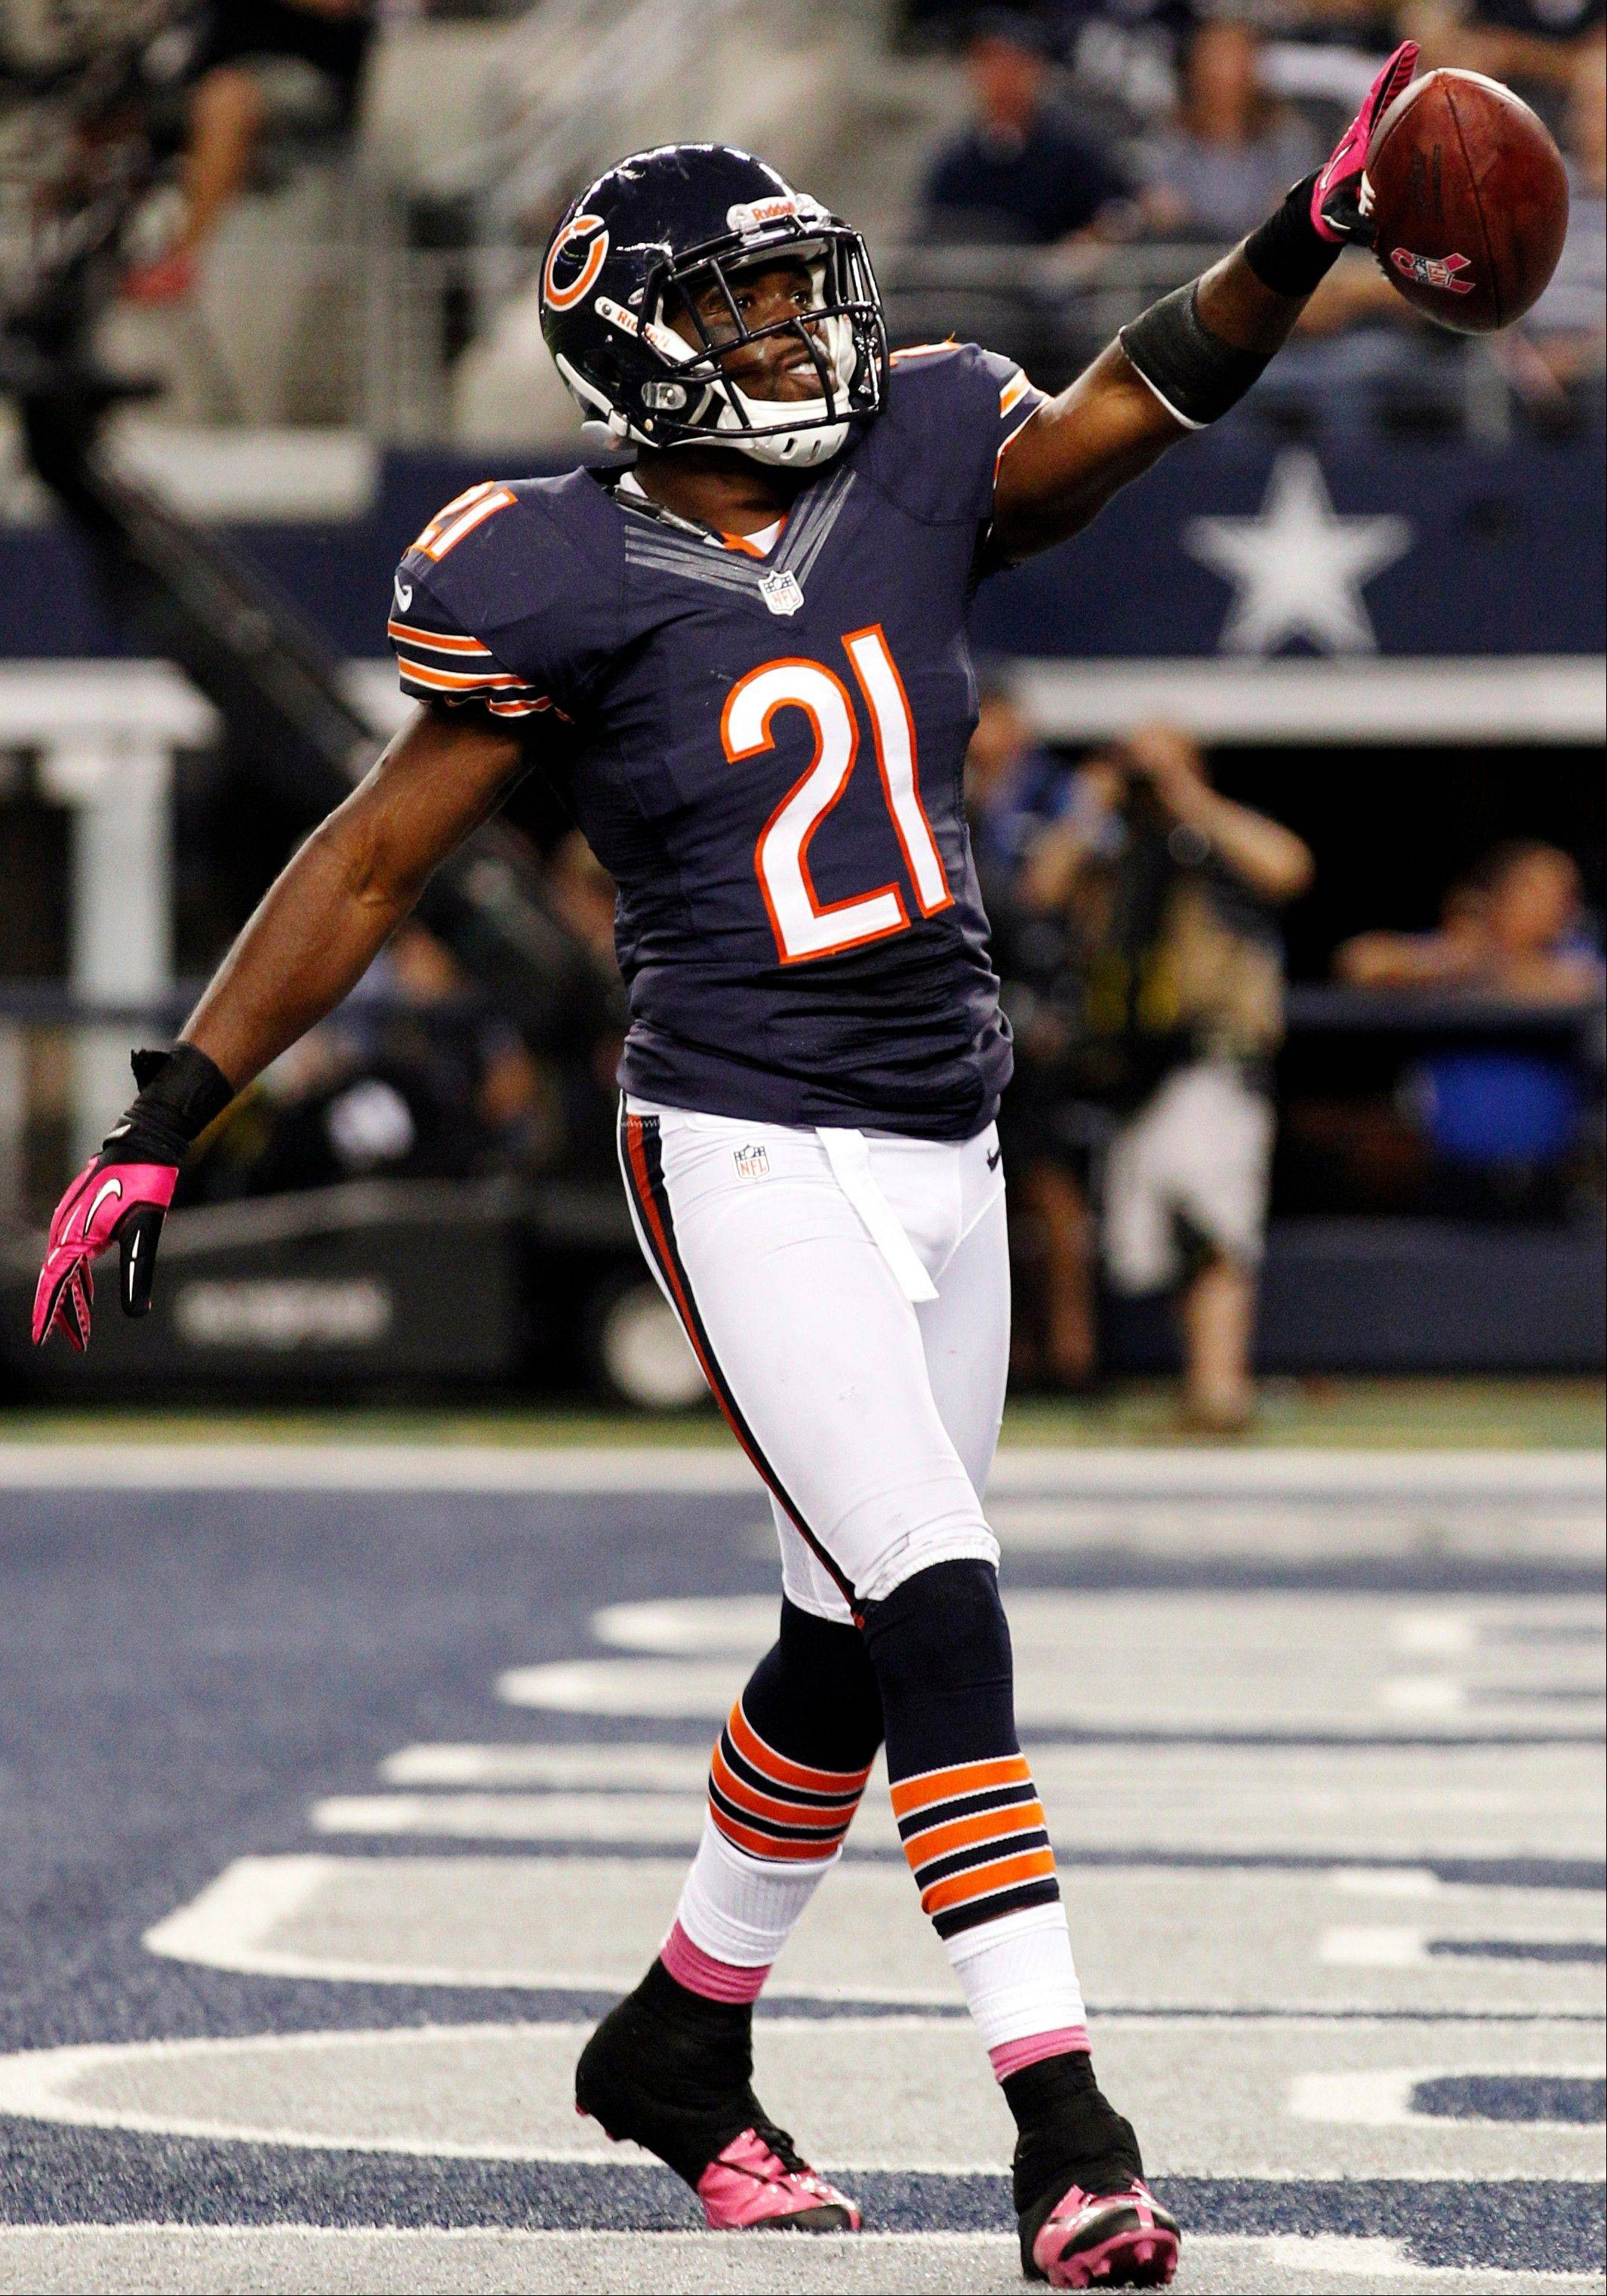 Bears shut down Dallas with big 'D'